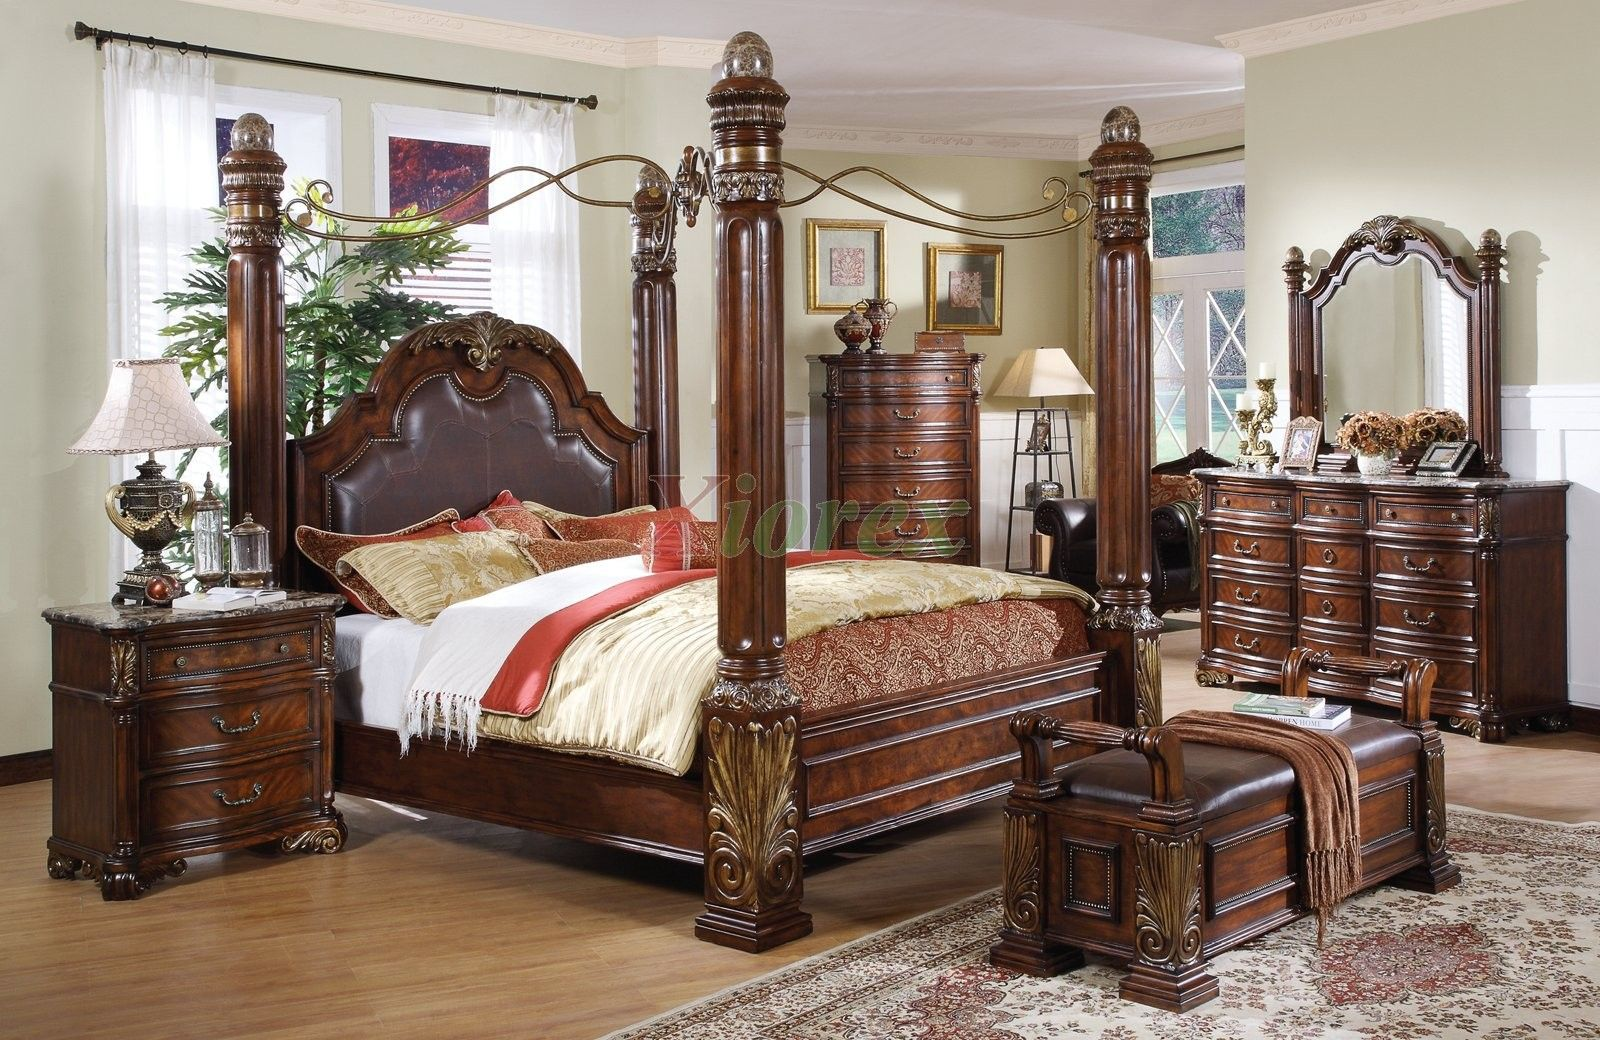 Poster King Size Bedroom Set - Google Search  Canopy bedroom sets